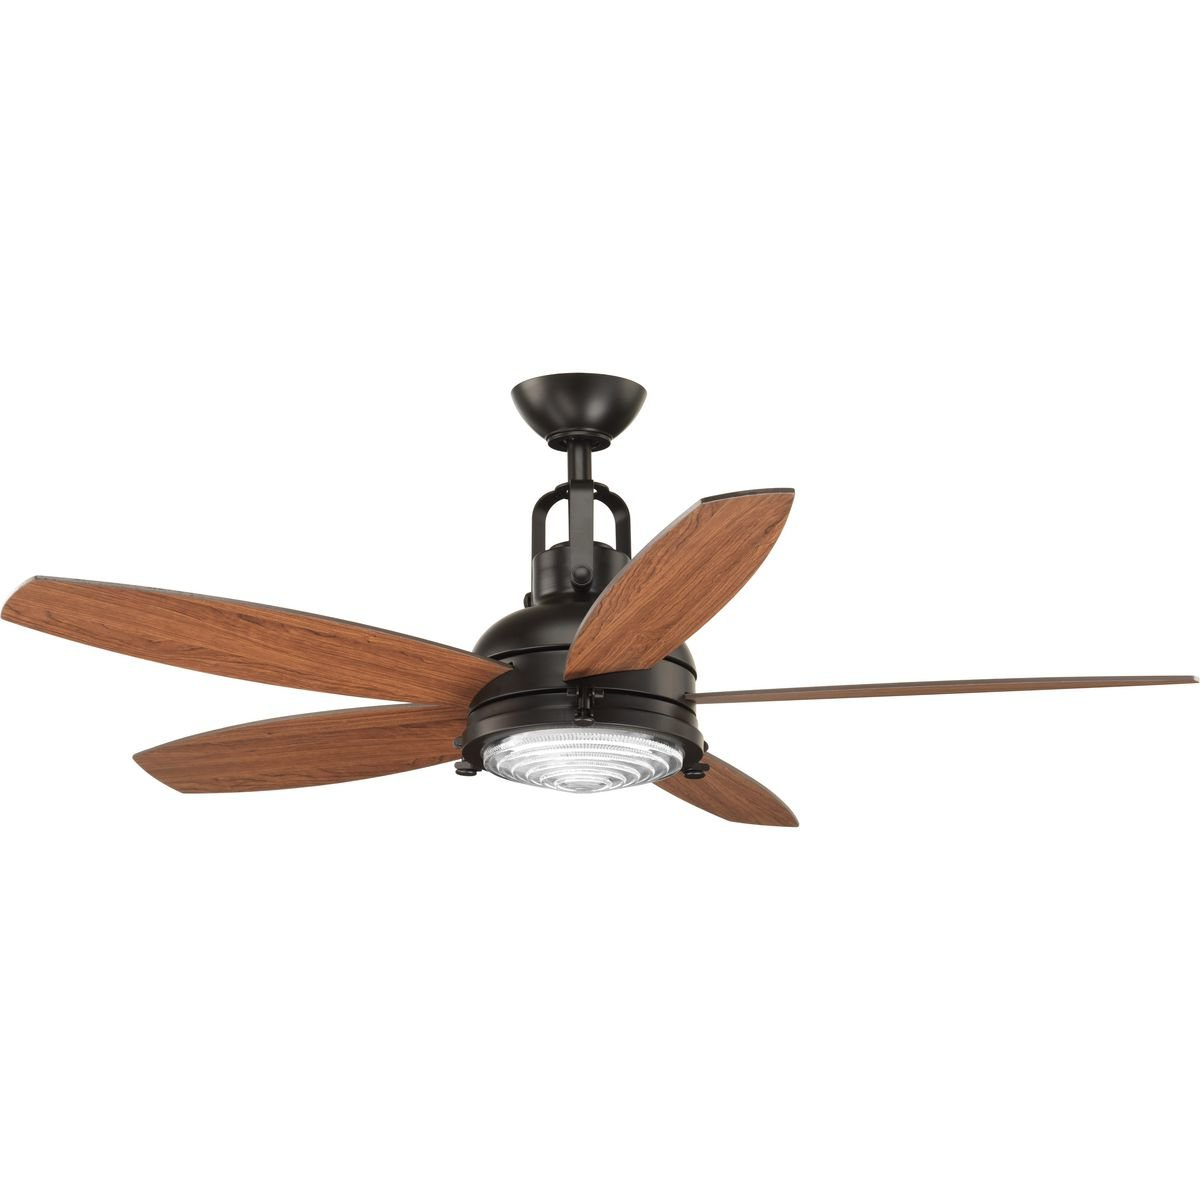 Brown Blades Ceiling Fans (Gallery 15 of 20)